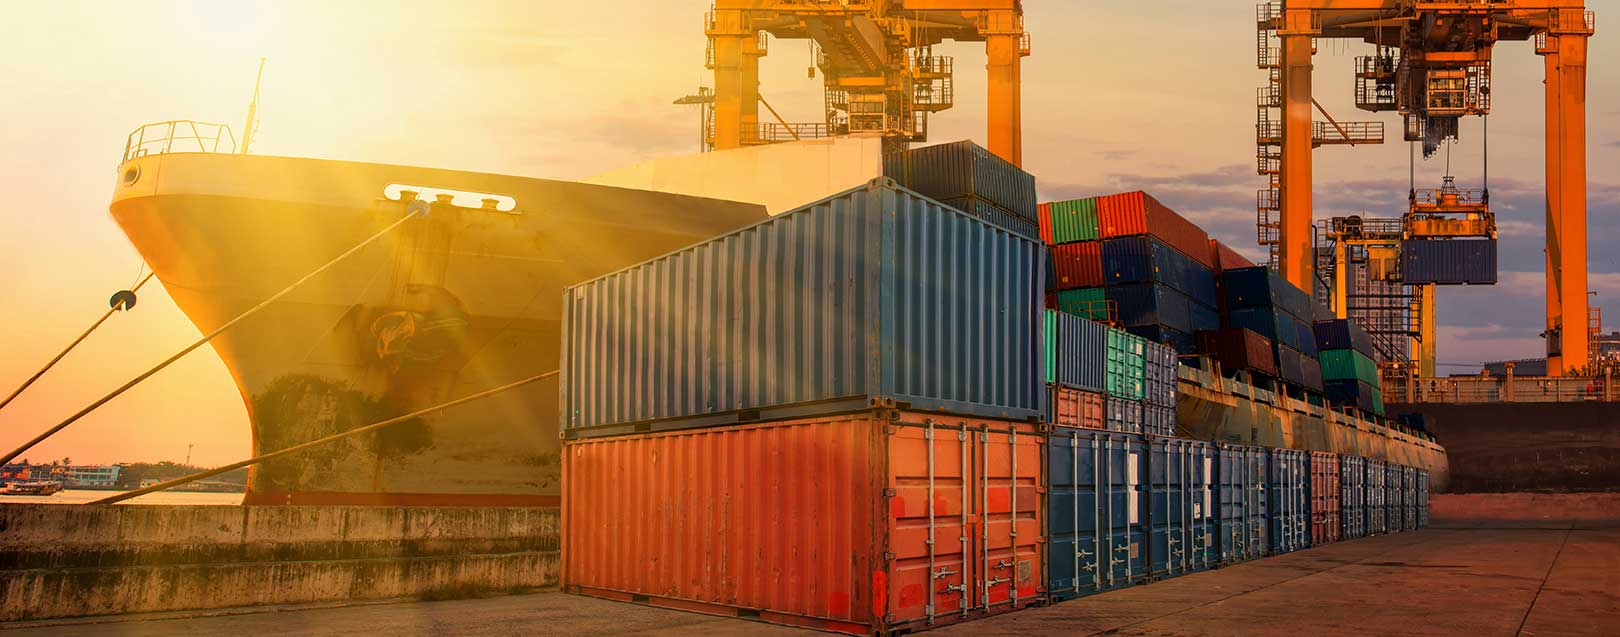 Commerce Department pushes for more sops for small exporters